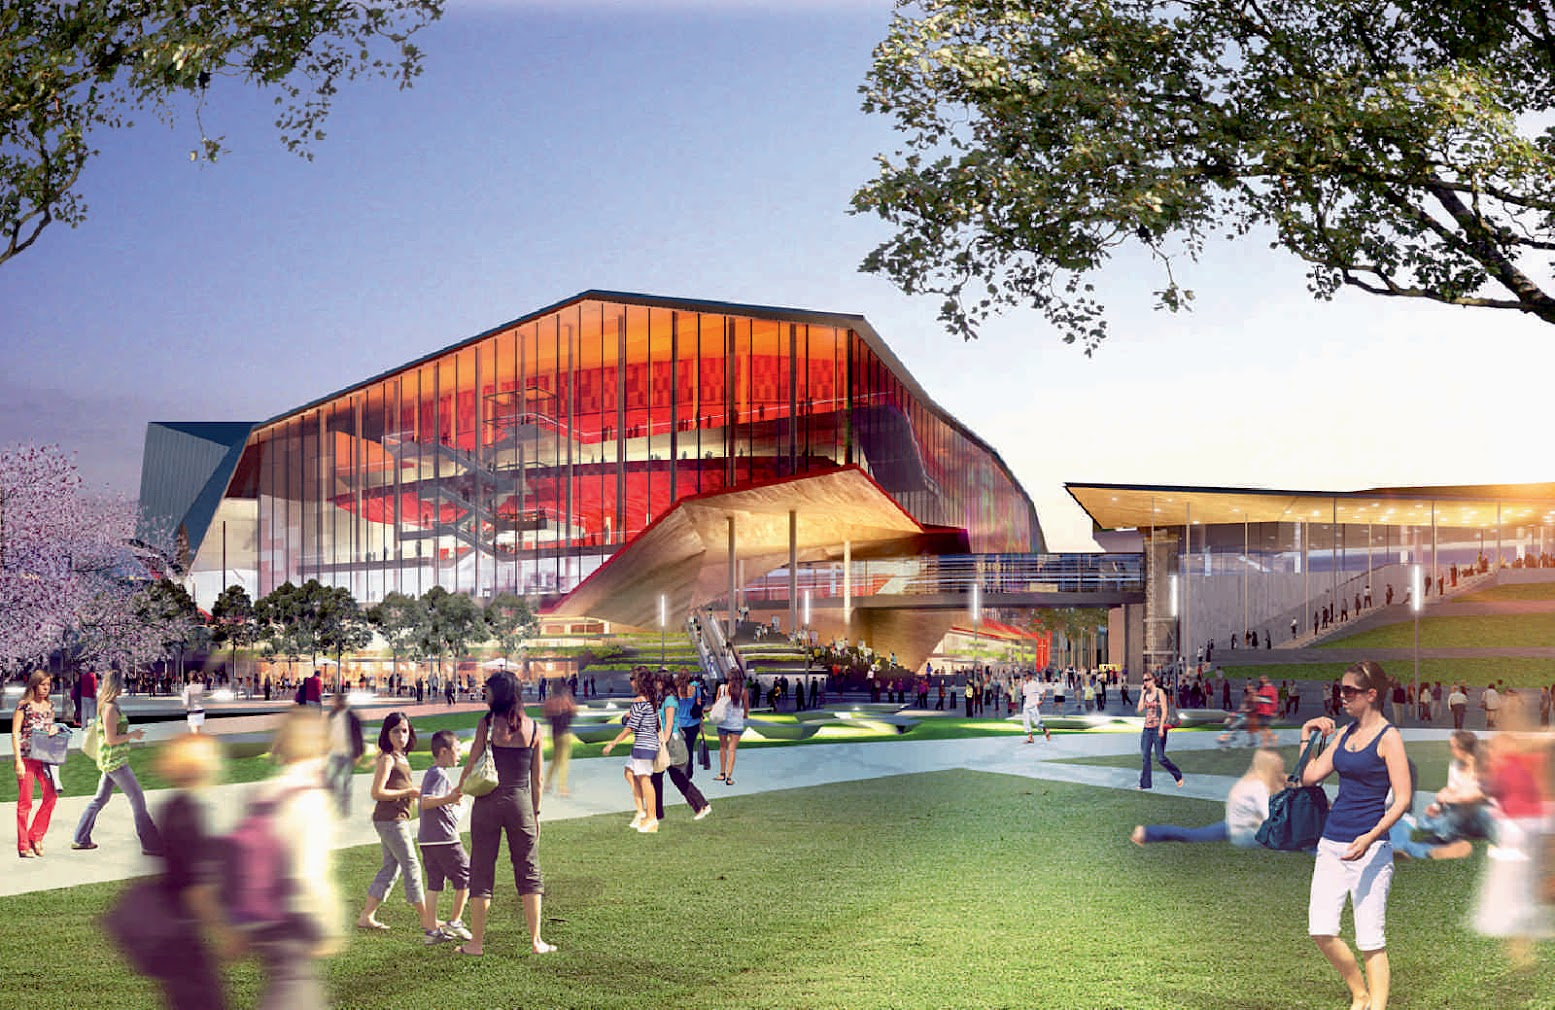 Sydney Nuovo Galles del Sud, Australia: [NEW CONVENTION, EXHIBITION AND ENTERTAINMENT PRECINCT BY HASSELL + POPULOUS]